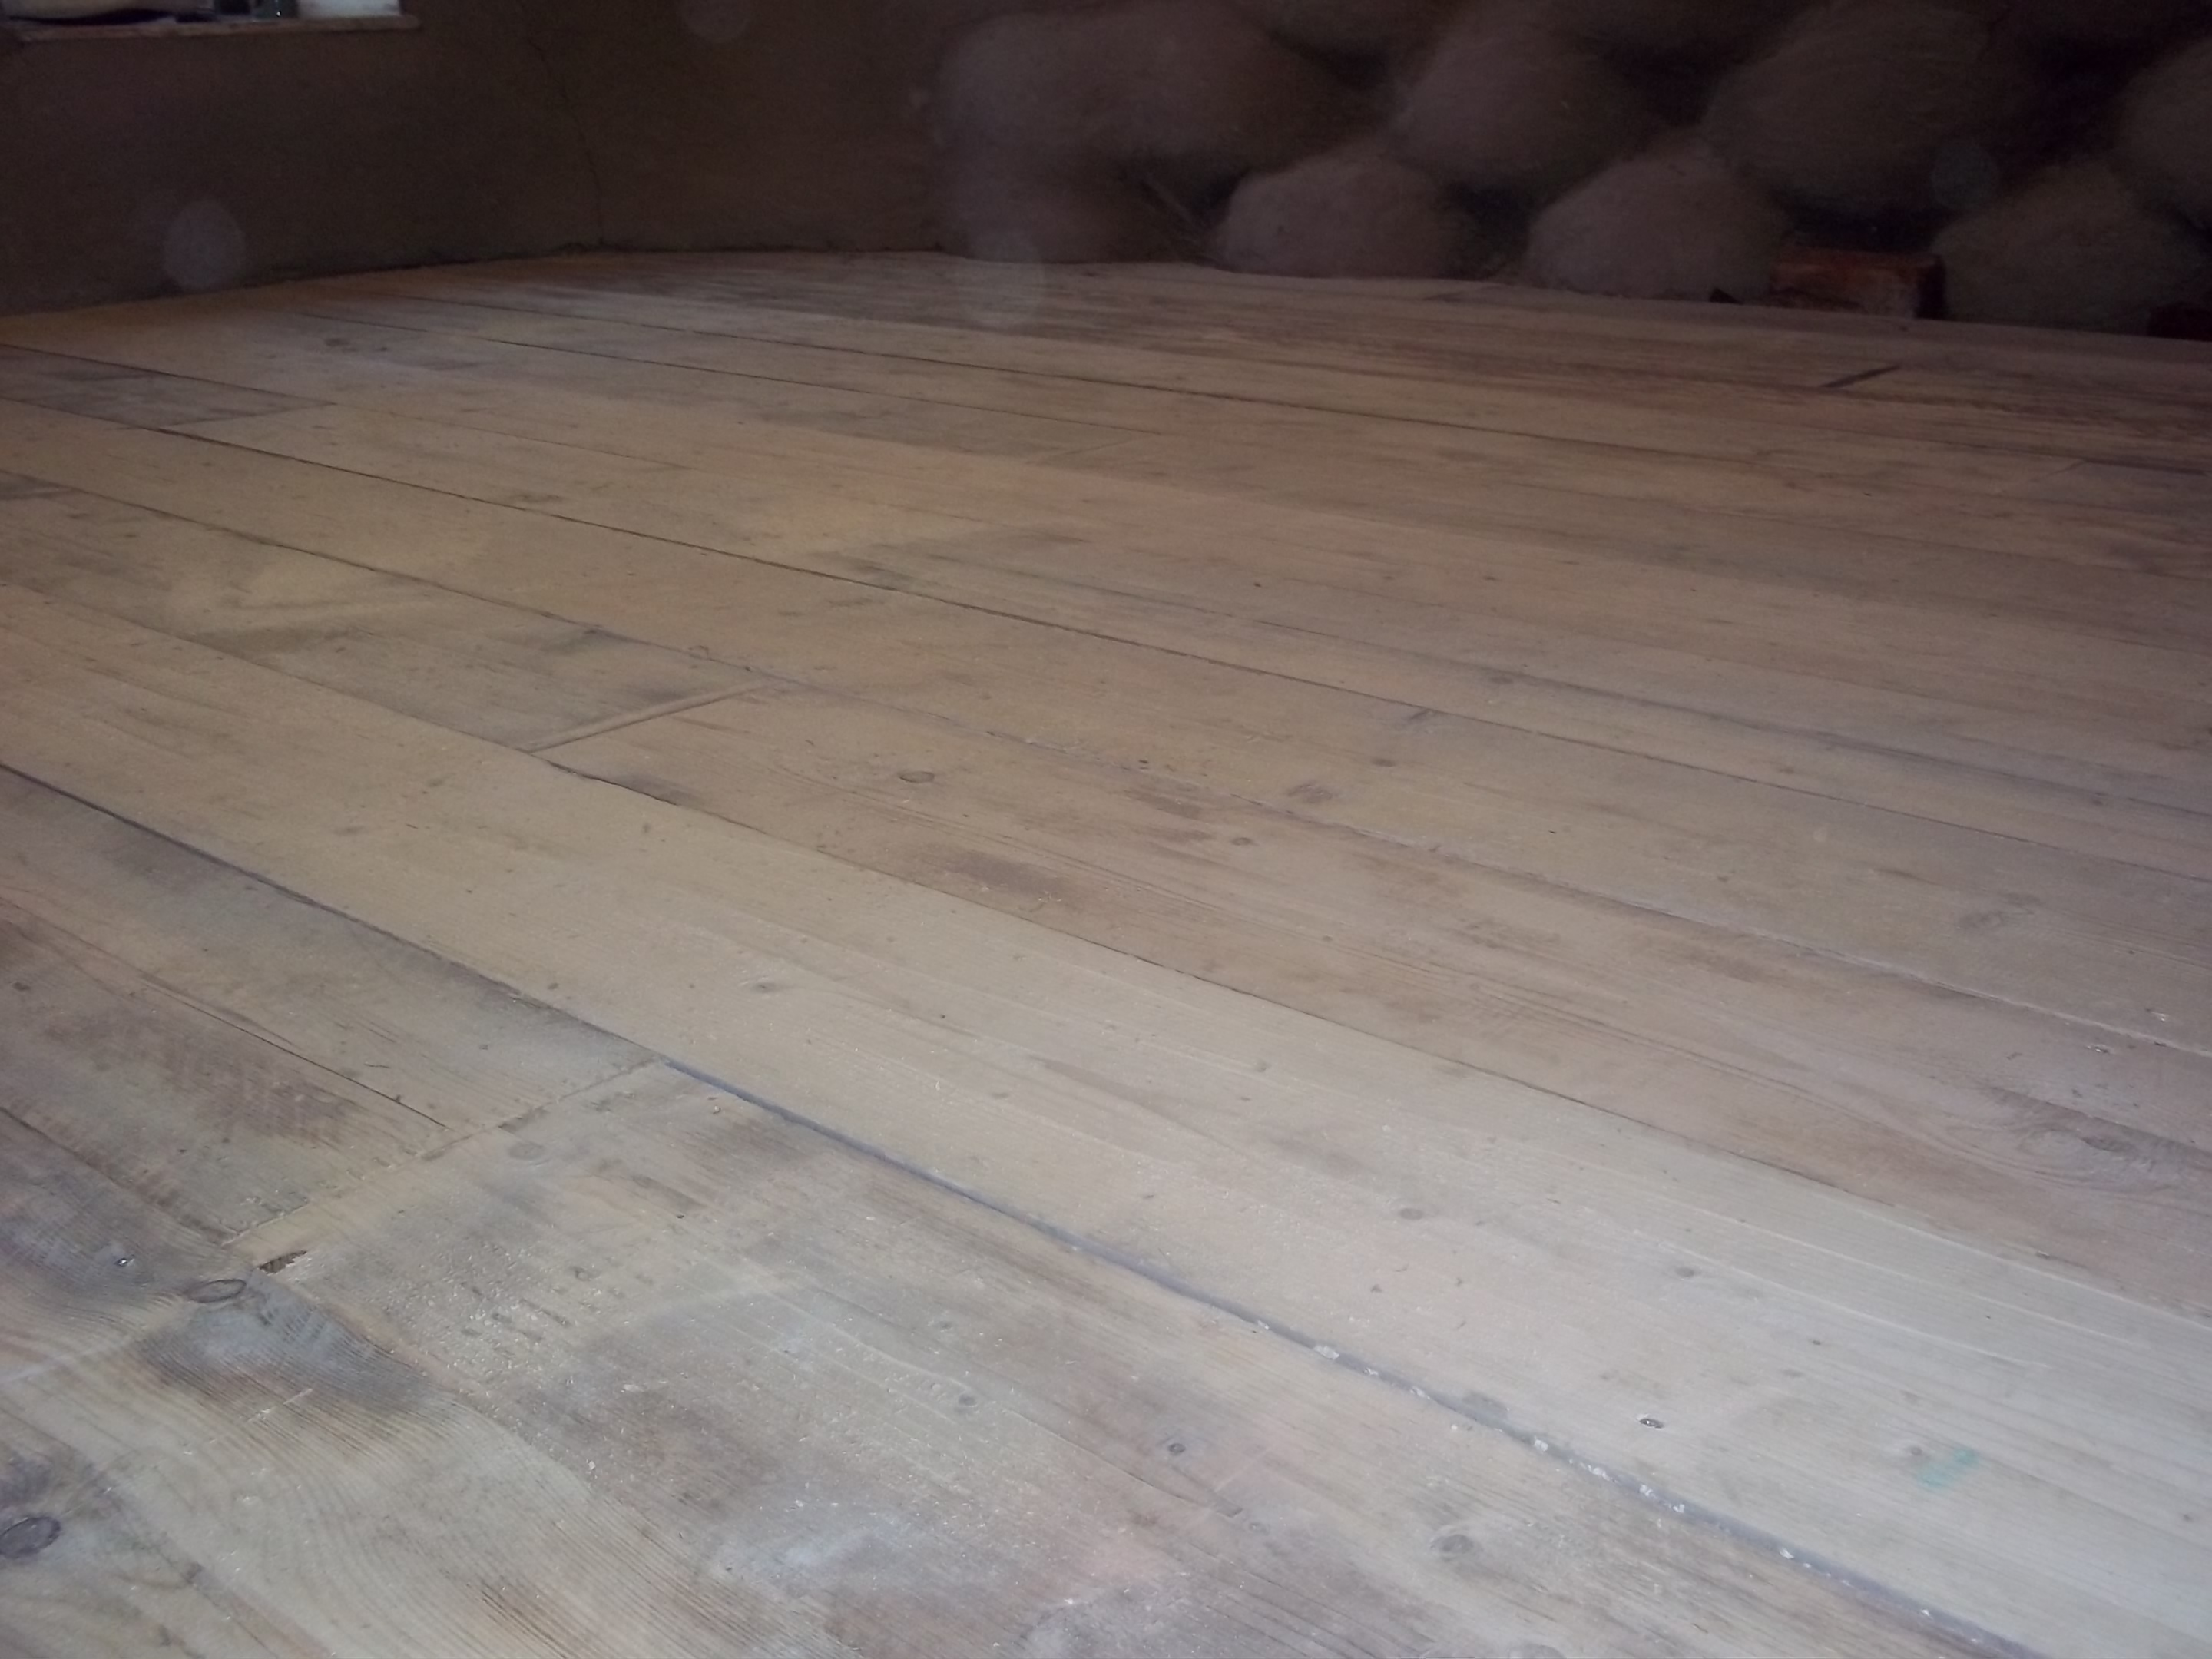 Scaffold Board Flooring Ingle Pingle